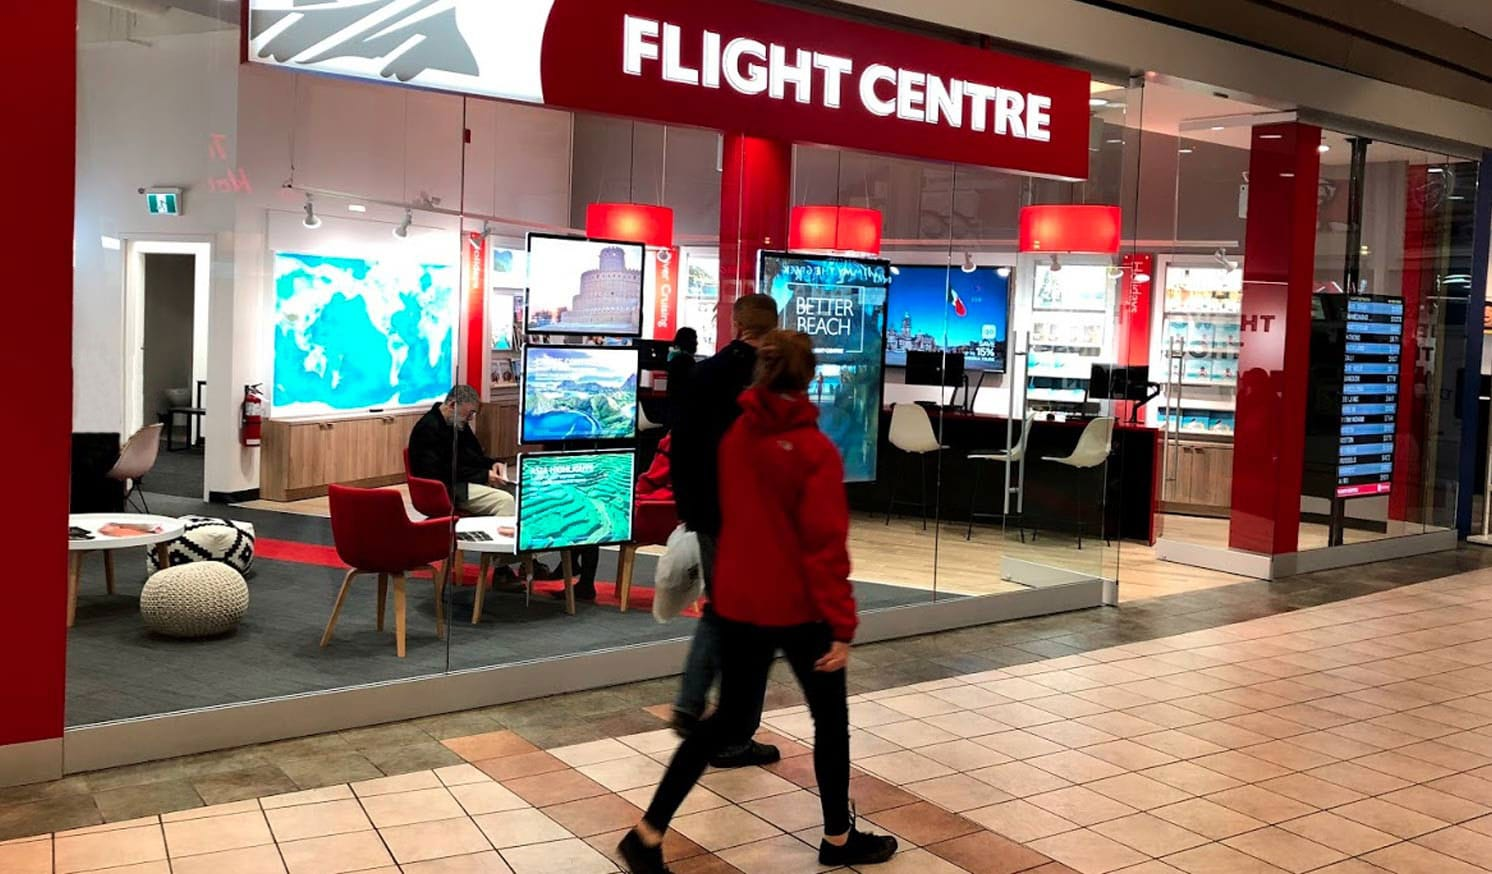 Flight Centre Storefront